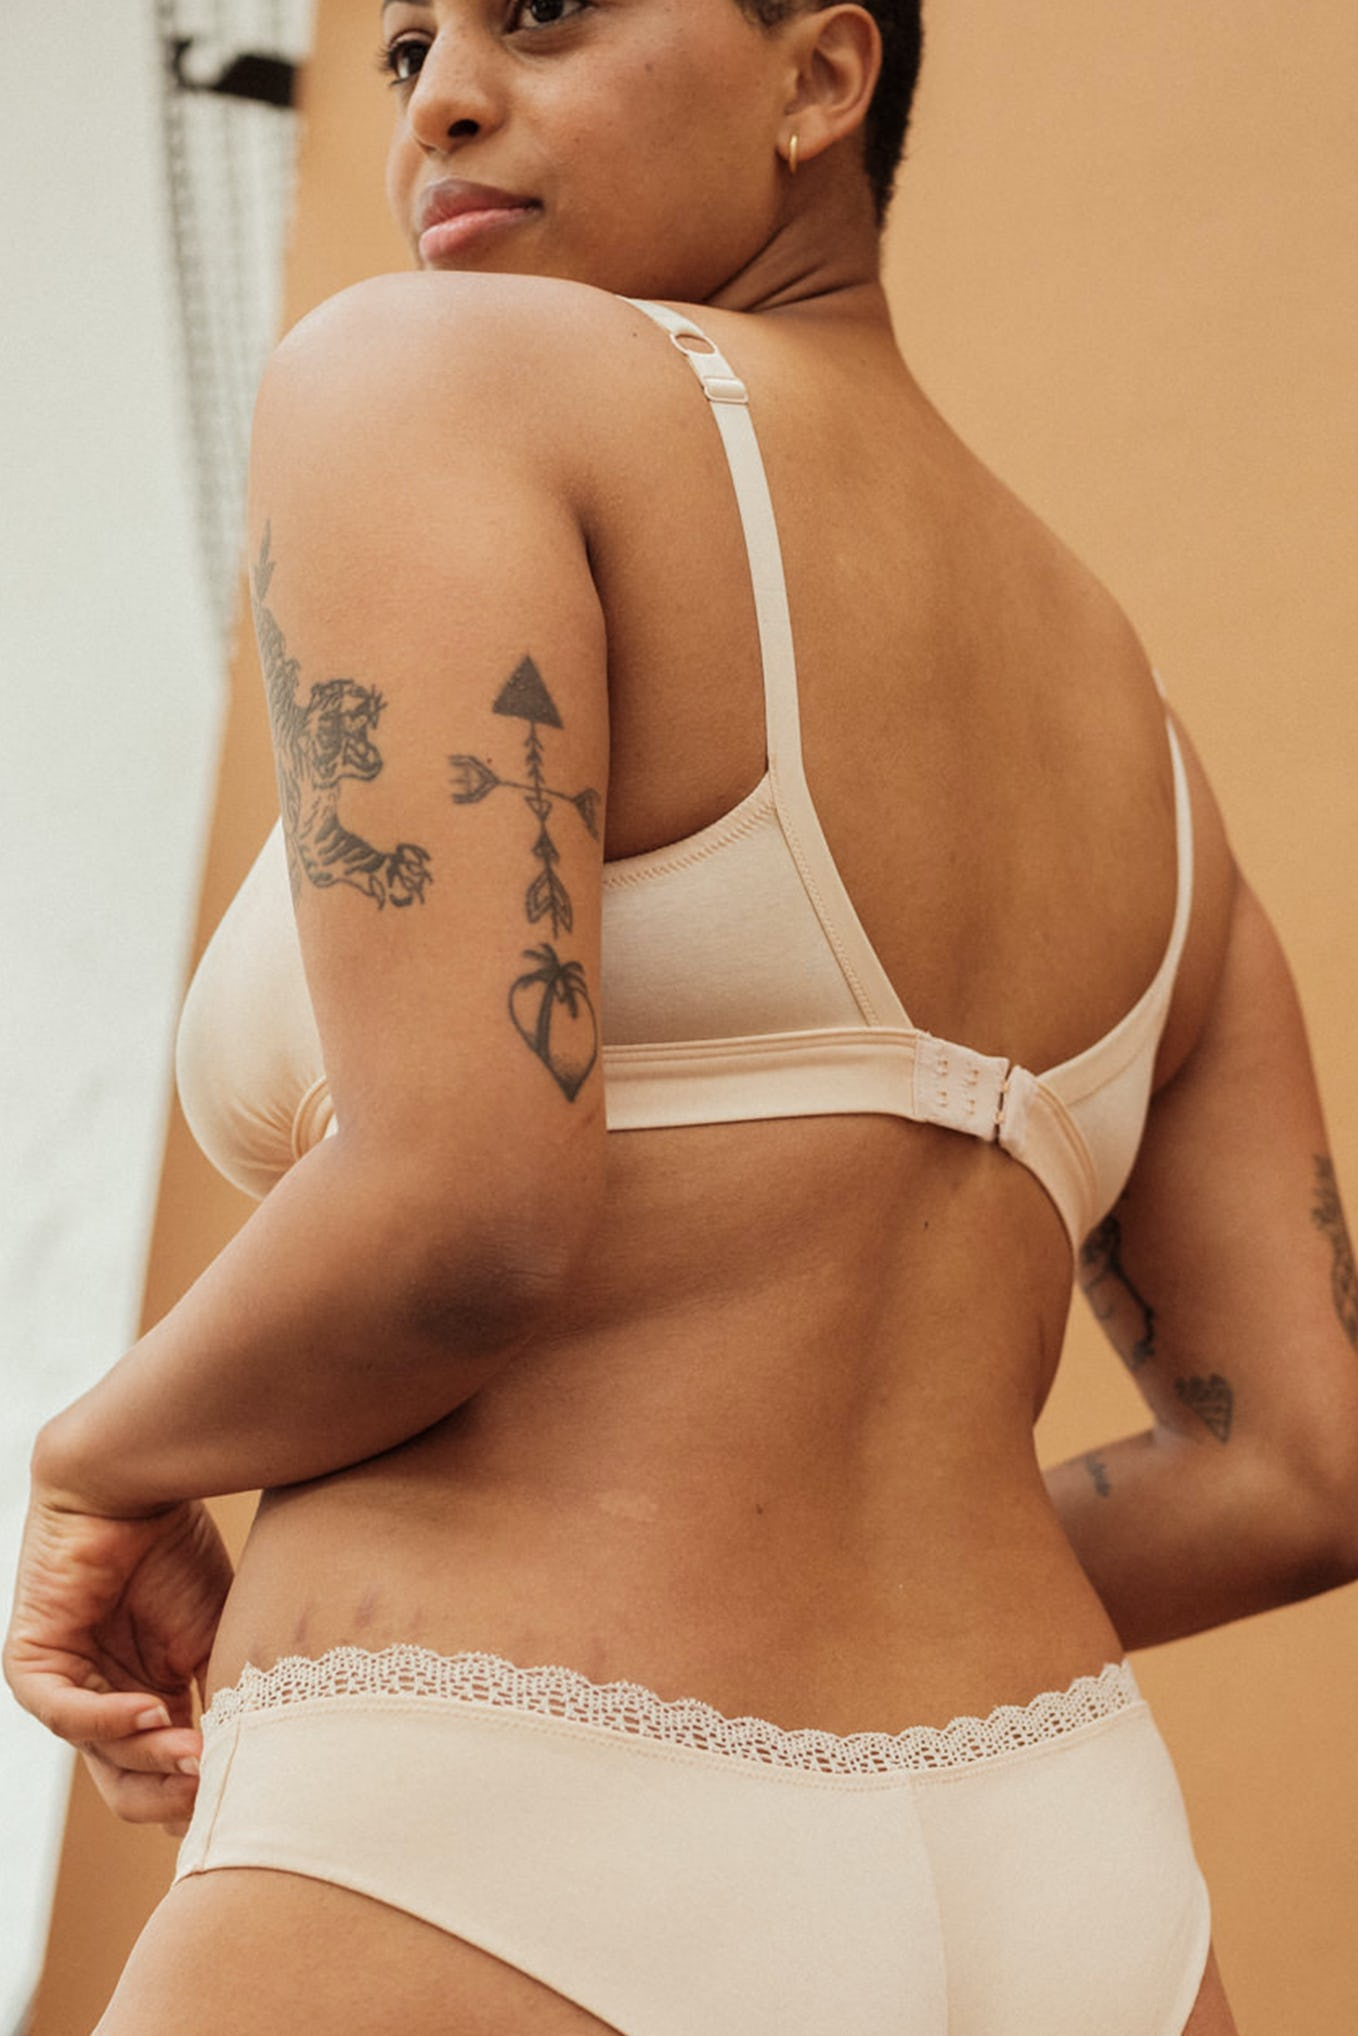 Maternity lingerie set Une chanson douce in light beige with bandeau bra and briefs